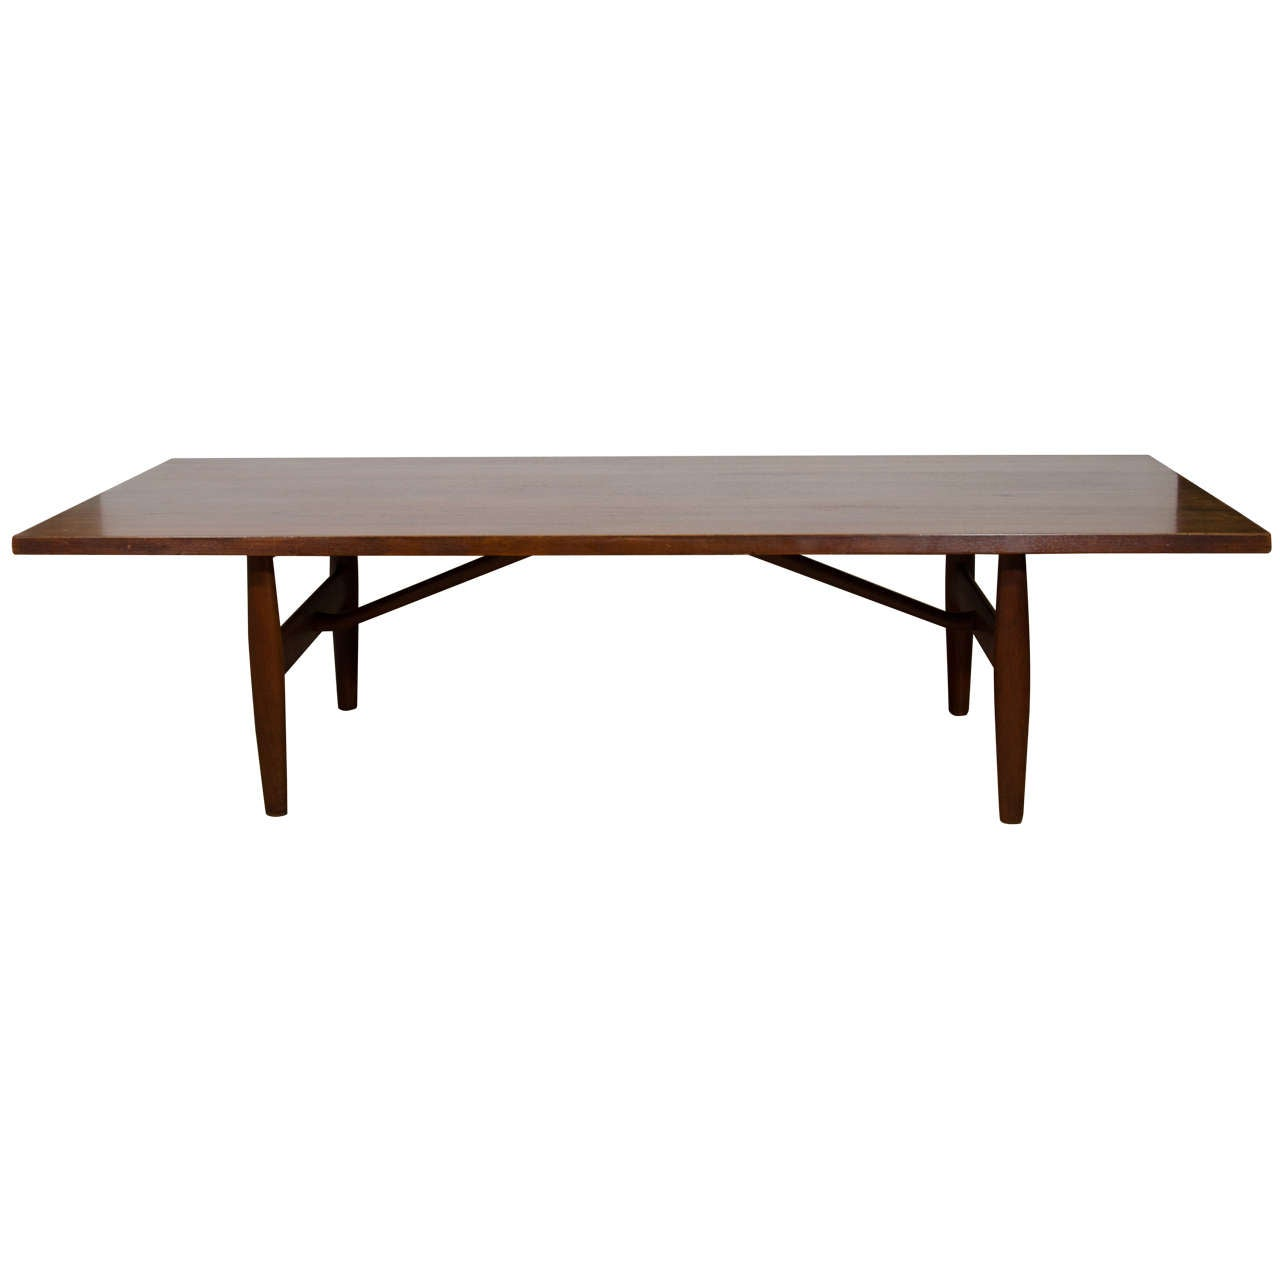 A Scandinavian Modern Coffee Or Cocktail Table By Sika Horsnaes For Sale At 1stdibs